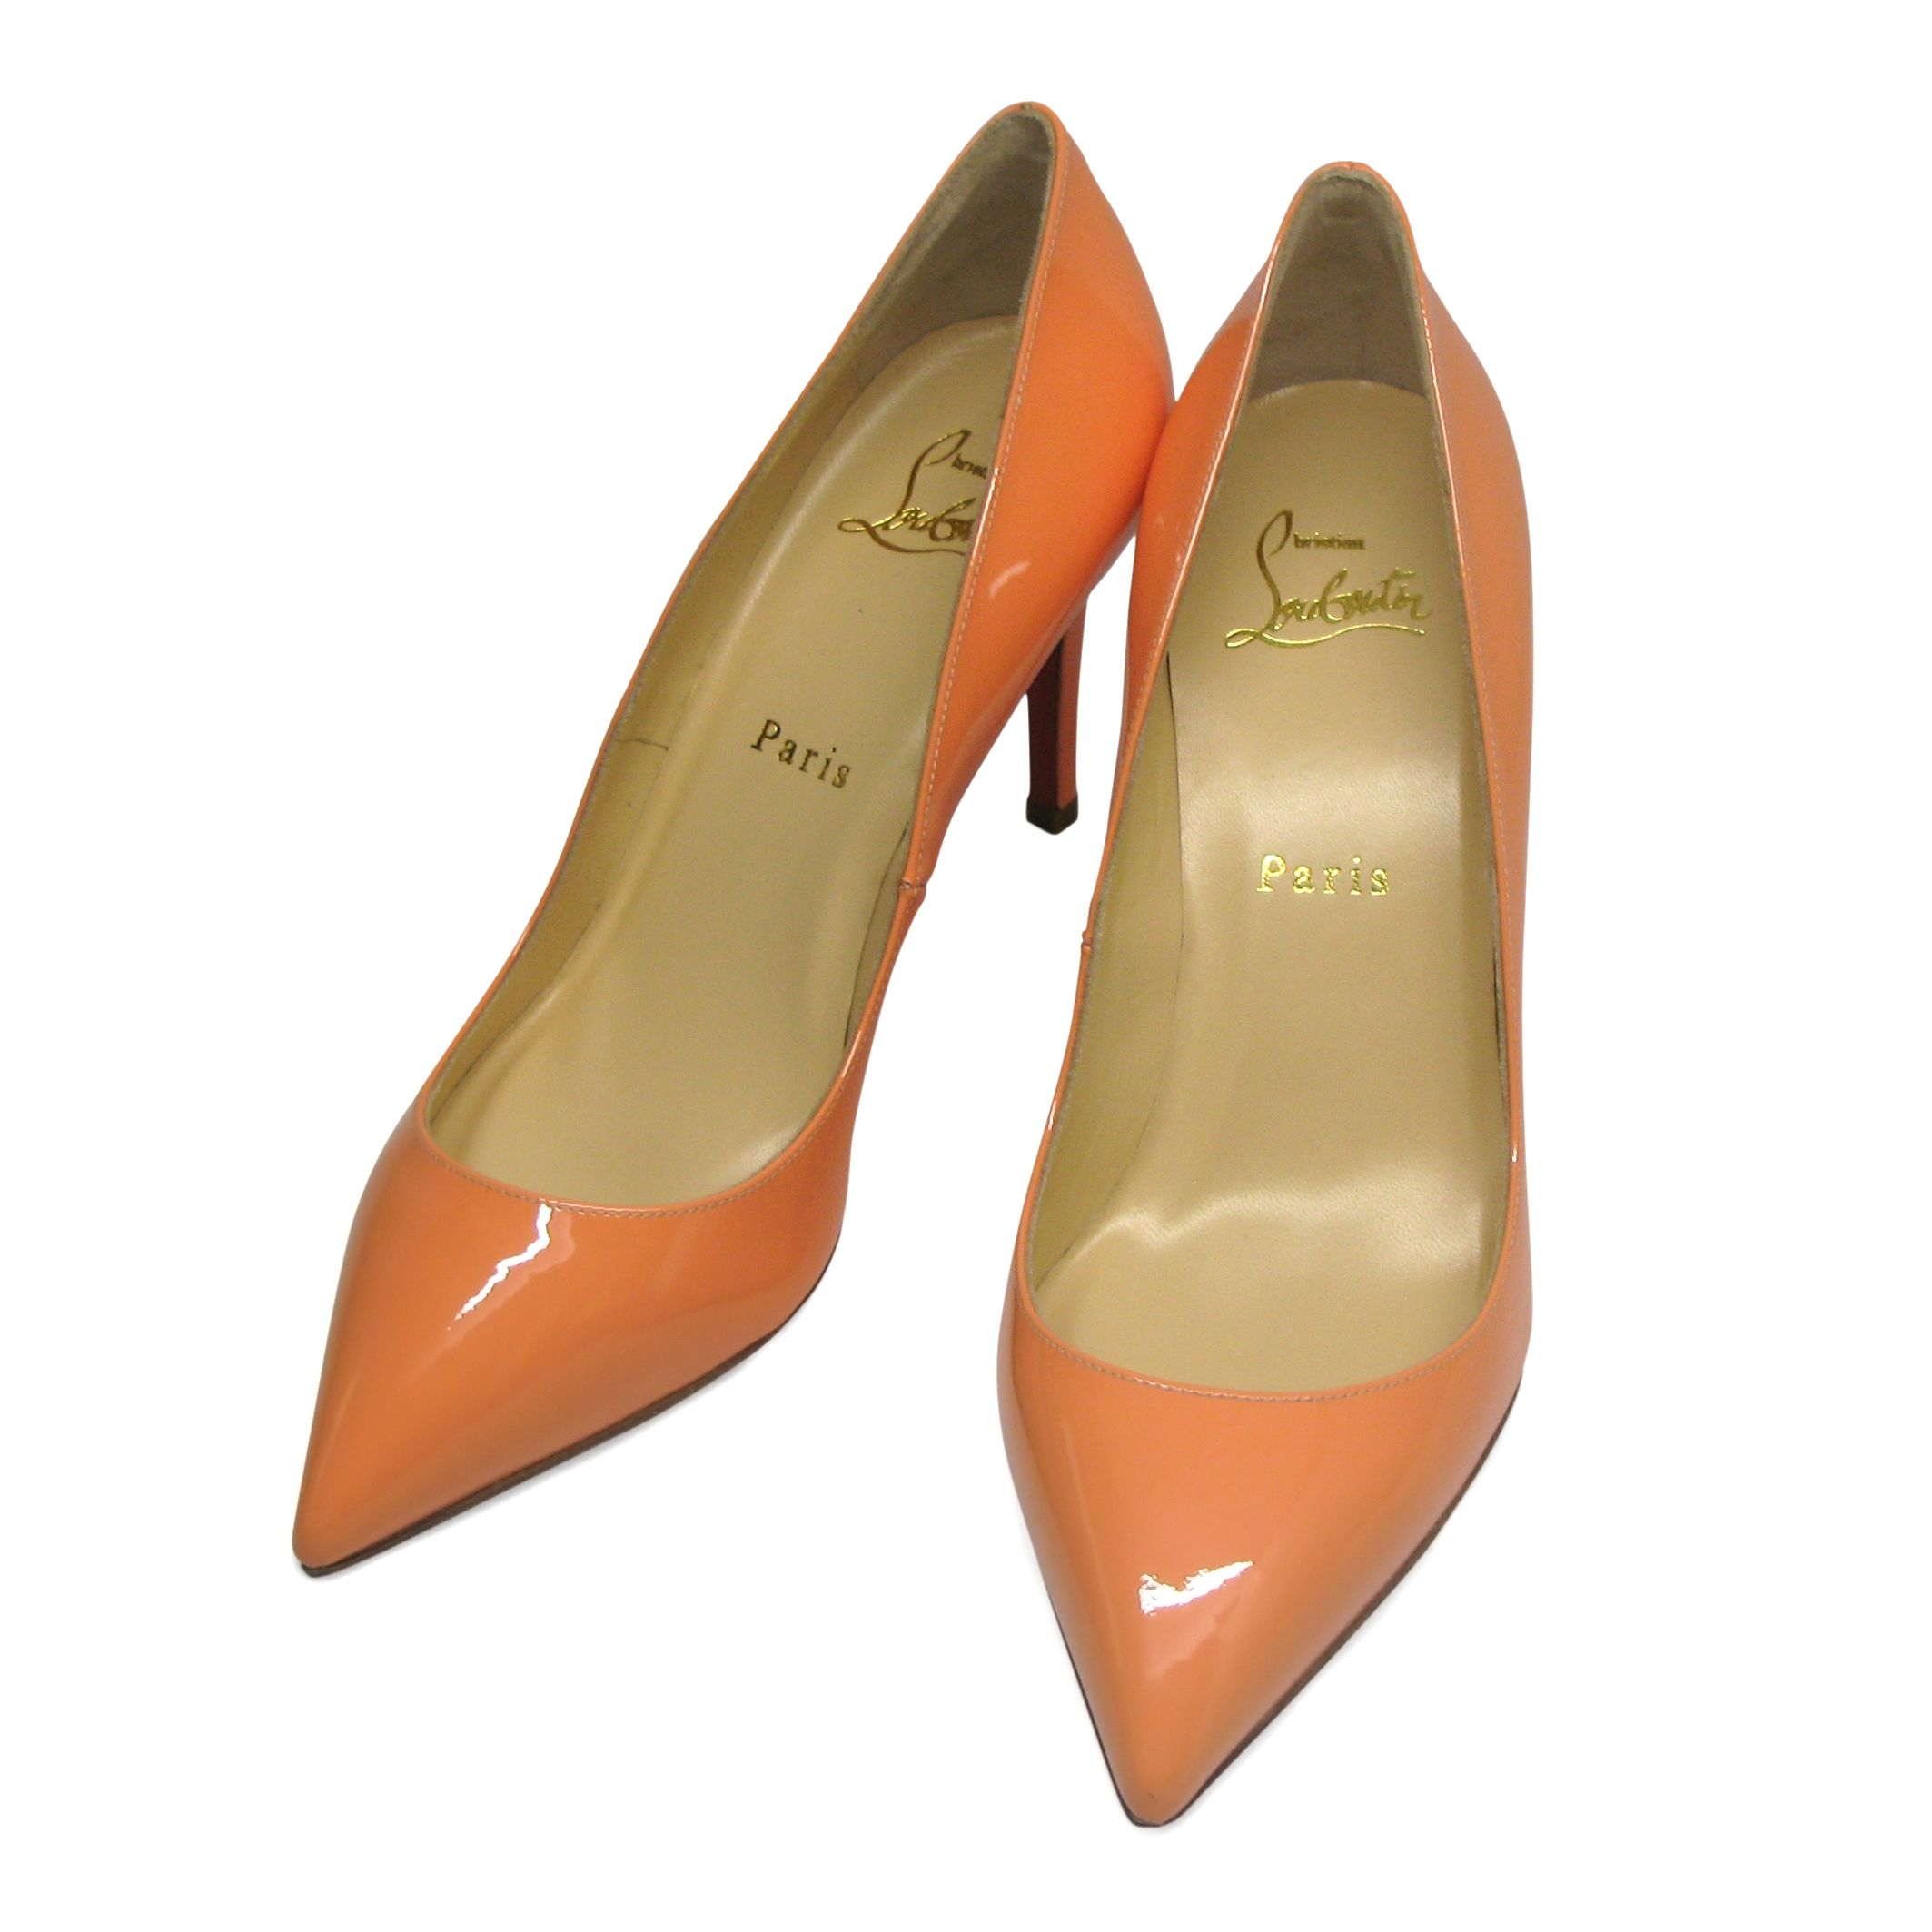 33eab90c9ef Very impressive Christian Louboutin point-toe Pigalle heels in mango (light  orange) color. Crafted from sleek patent-leather